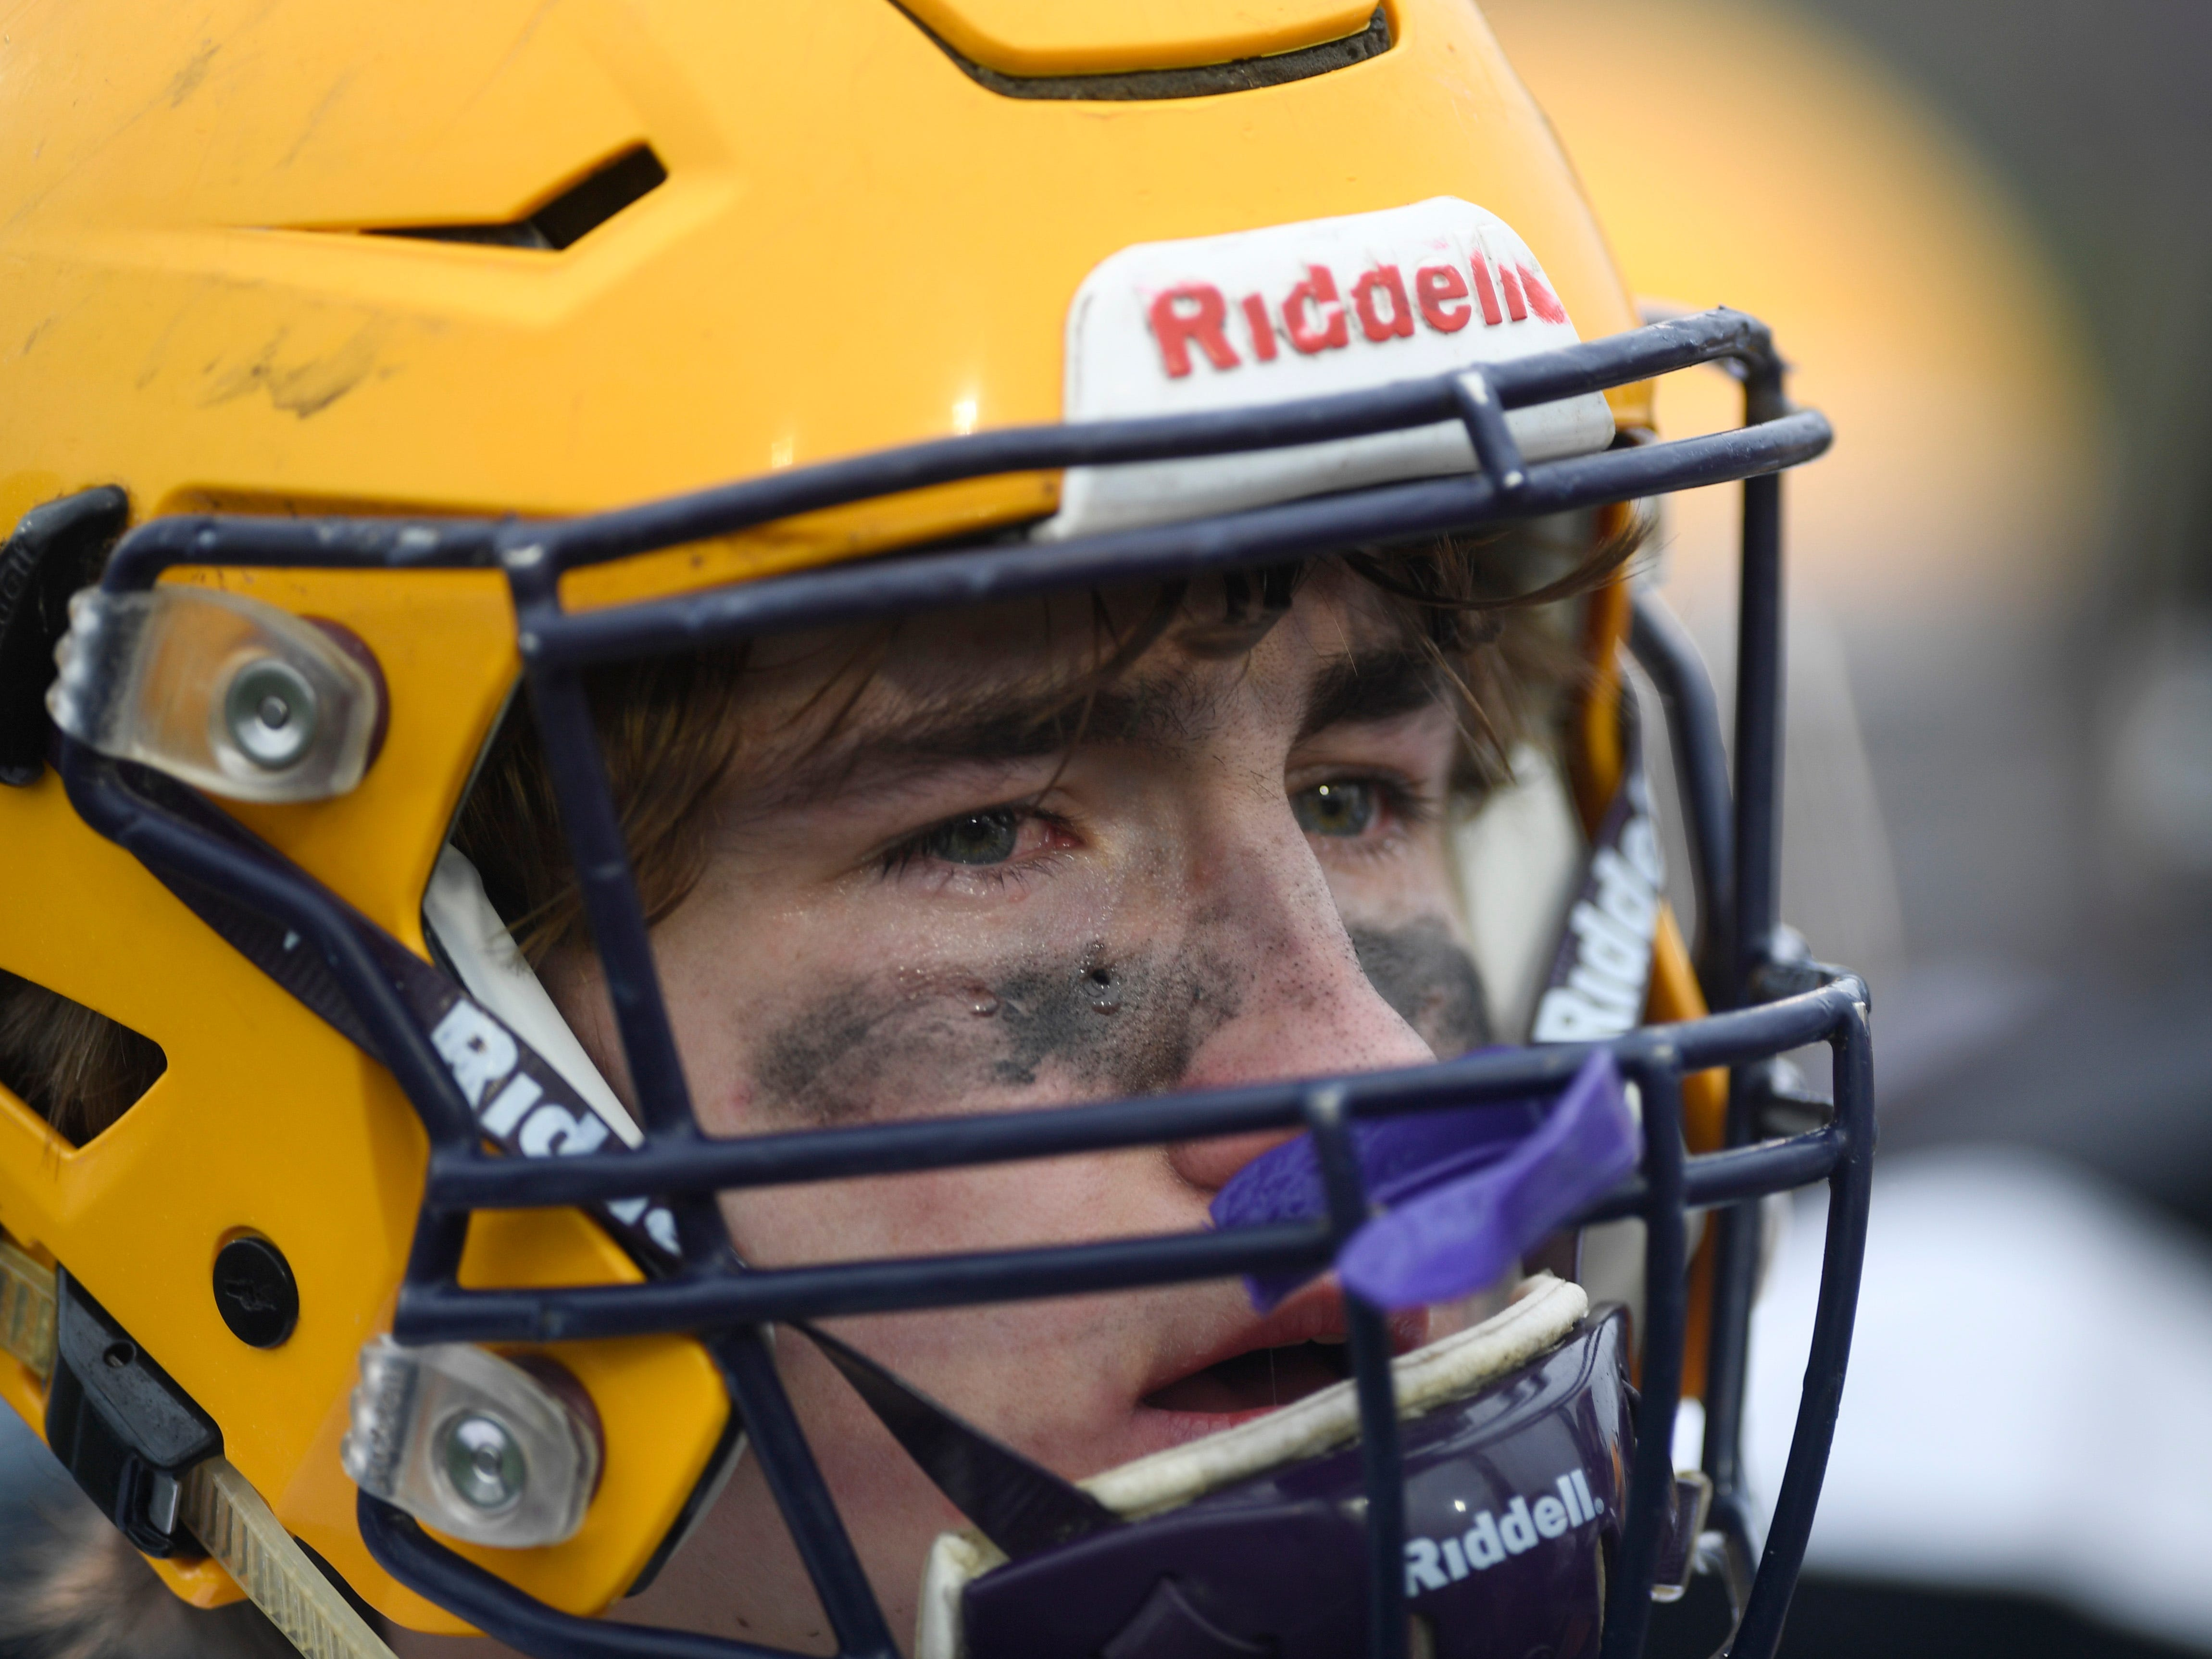 Trousdale's Benjamin Chumley (11) reacts after the team's loss in the Class 2A BlueCross Bowl state championship at Tennessee Tech's Tucker Stadium in Cookeville, Tenn., on Thursday, Nov. 29, 2018.